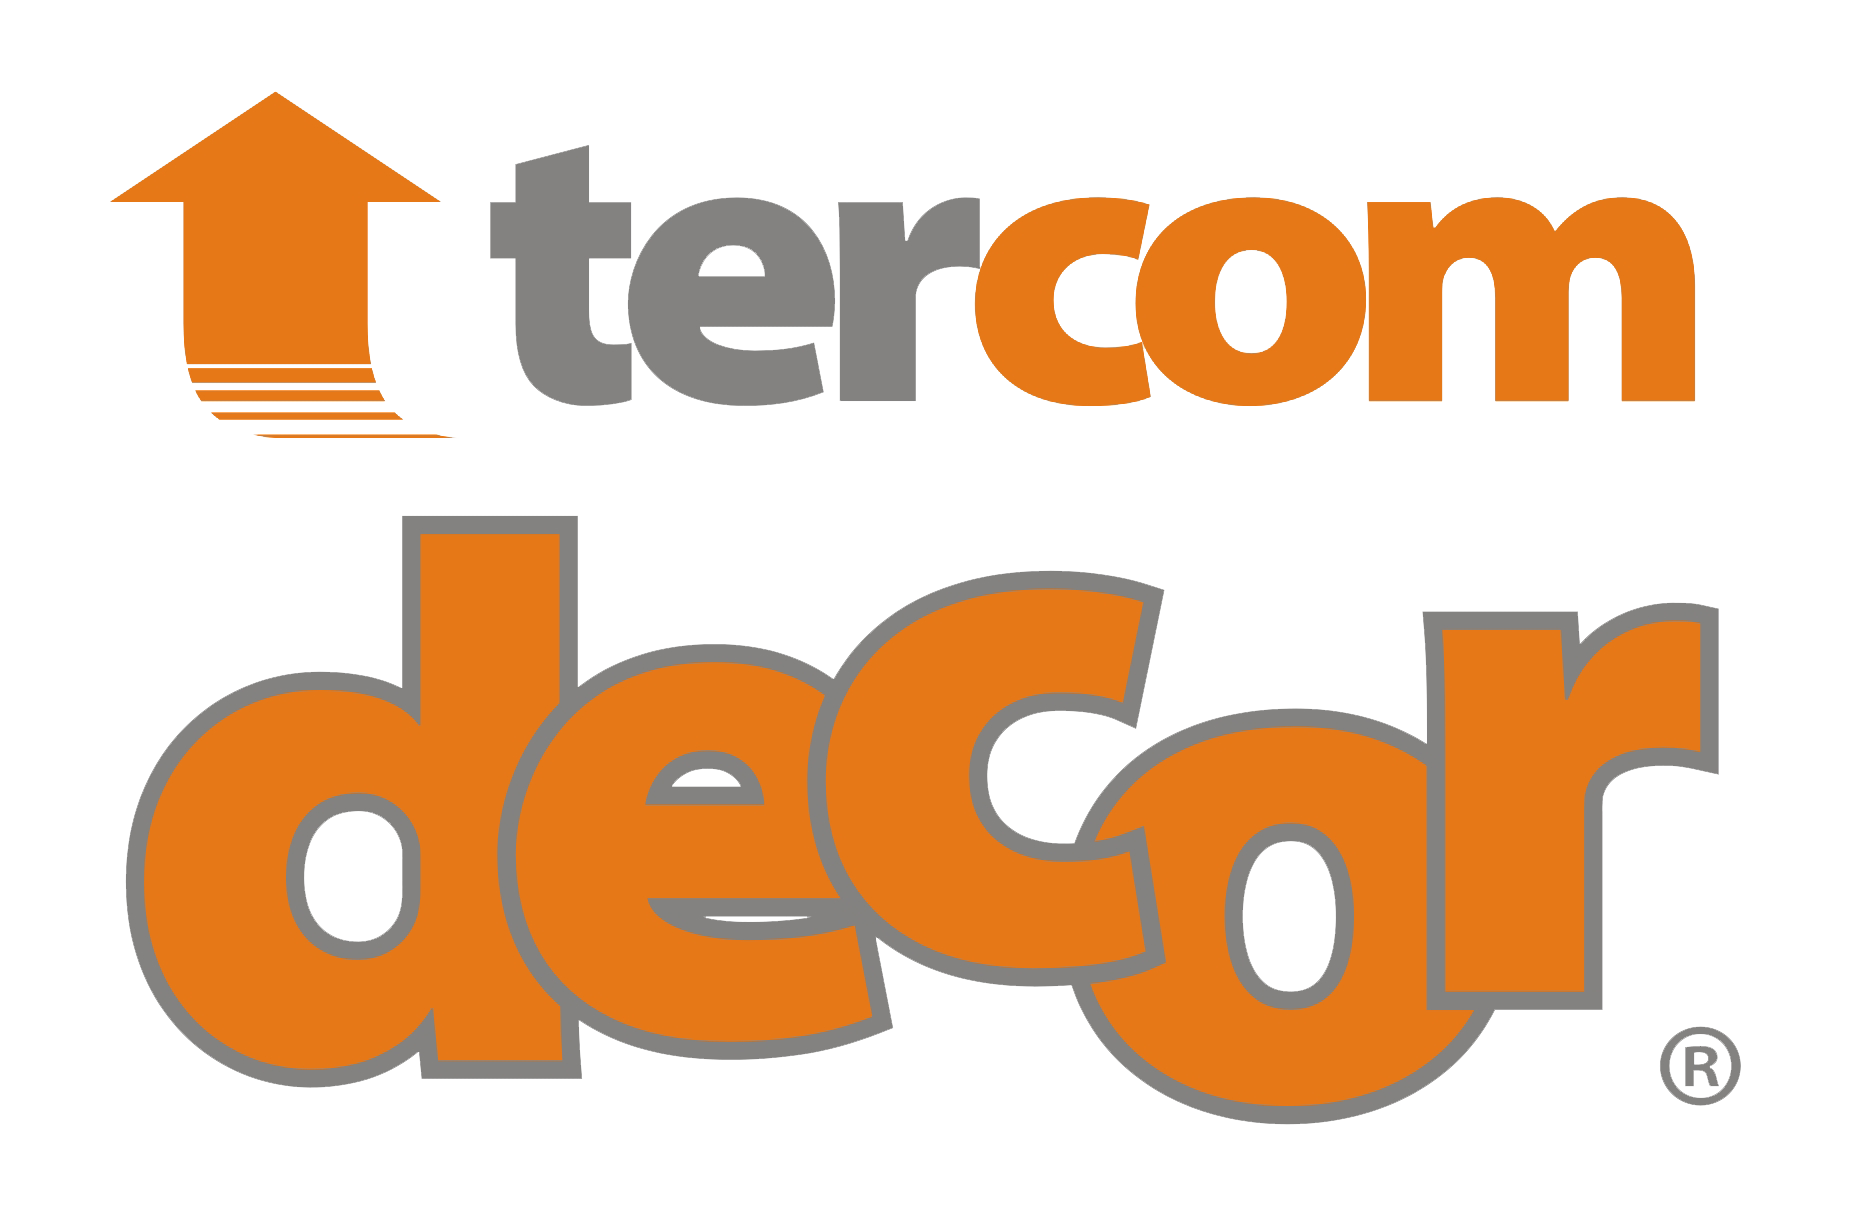 Tercomdecor